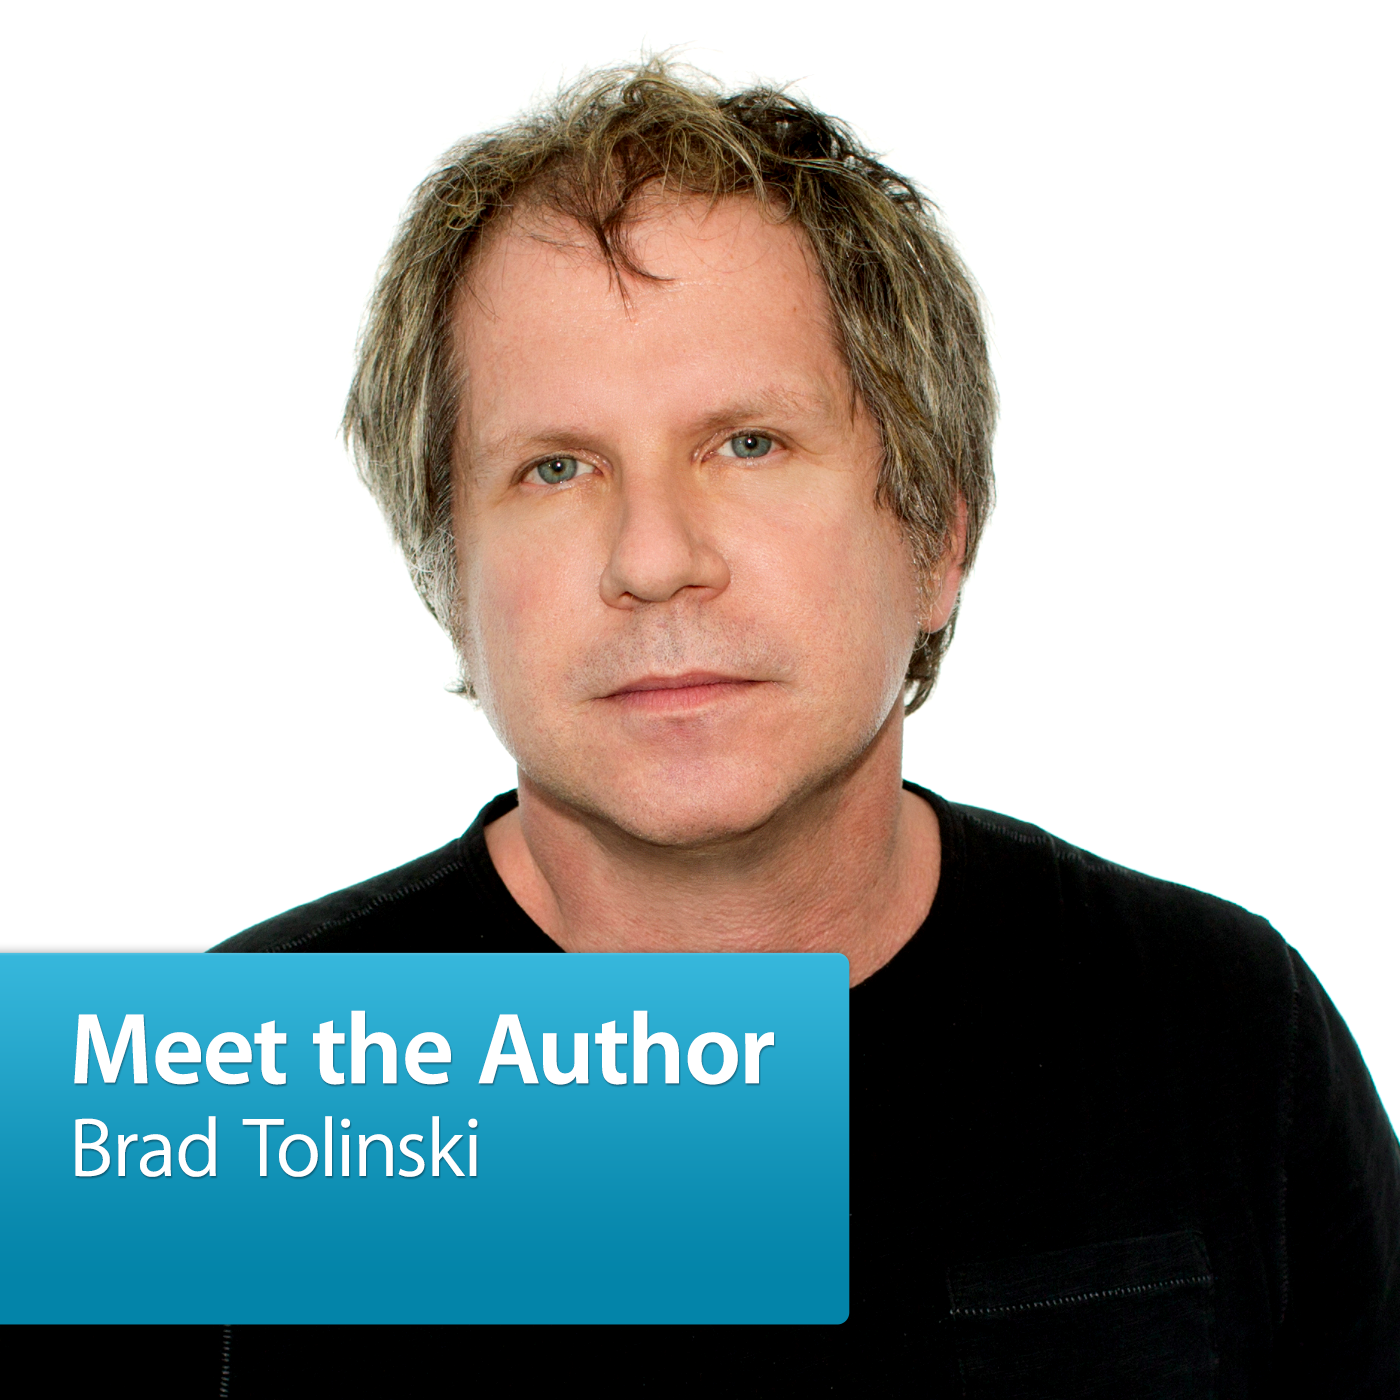 Brad Tolinski: Meet the Author